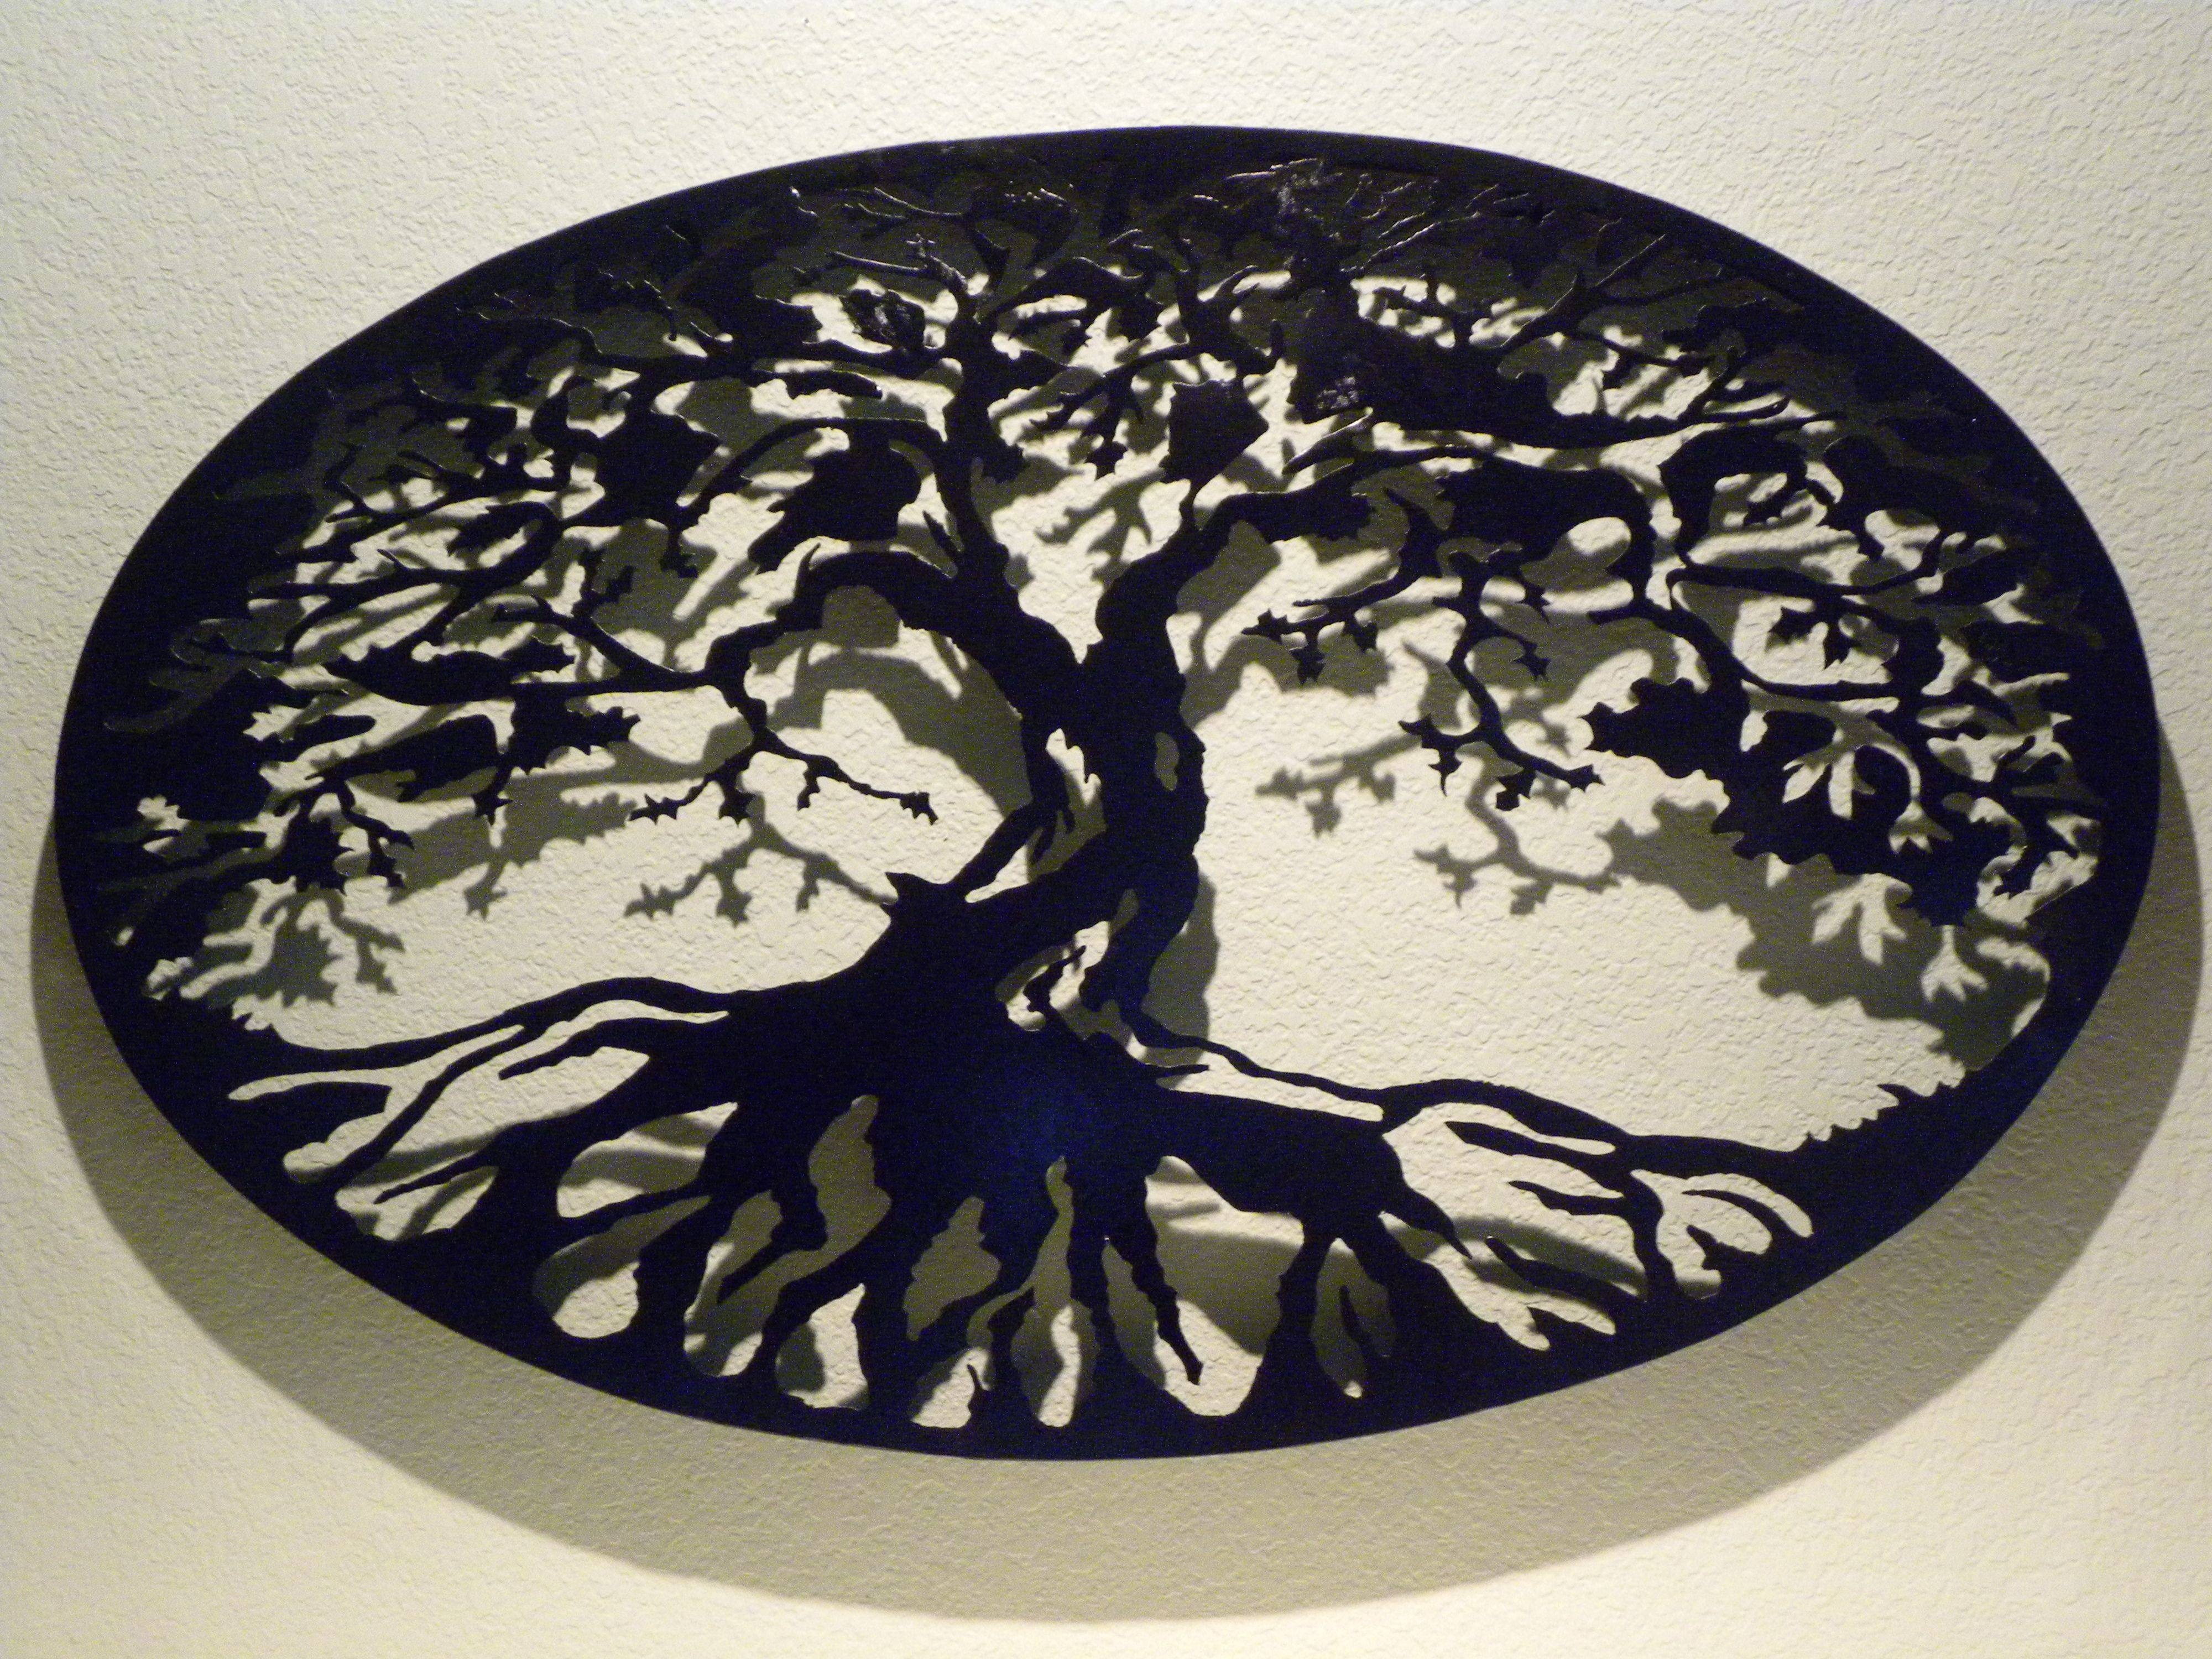 Buy A Custom Oval Tree Of Life Metal Wall Art, Made To Order From Intended For Newest Black And White Metal Wall Art (View 4 of 20)